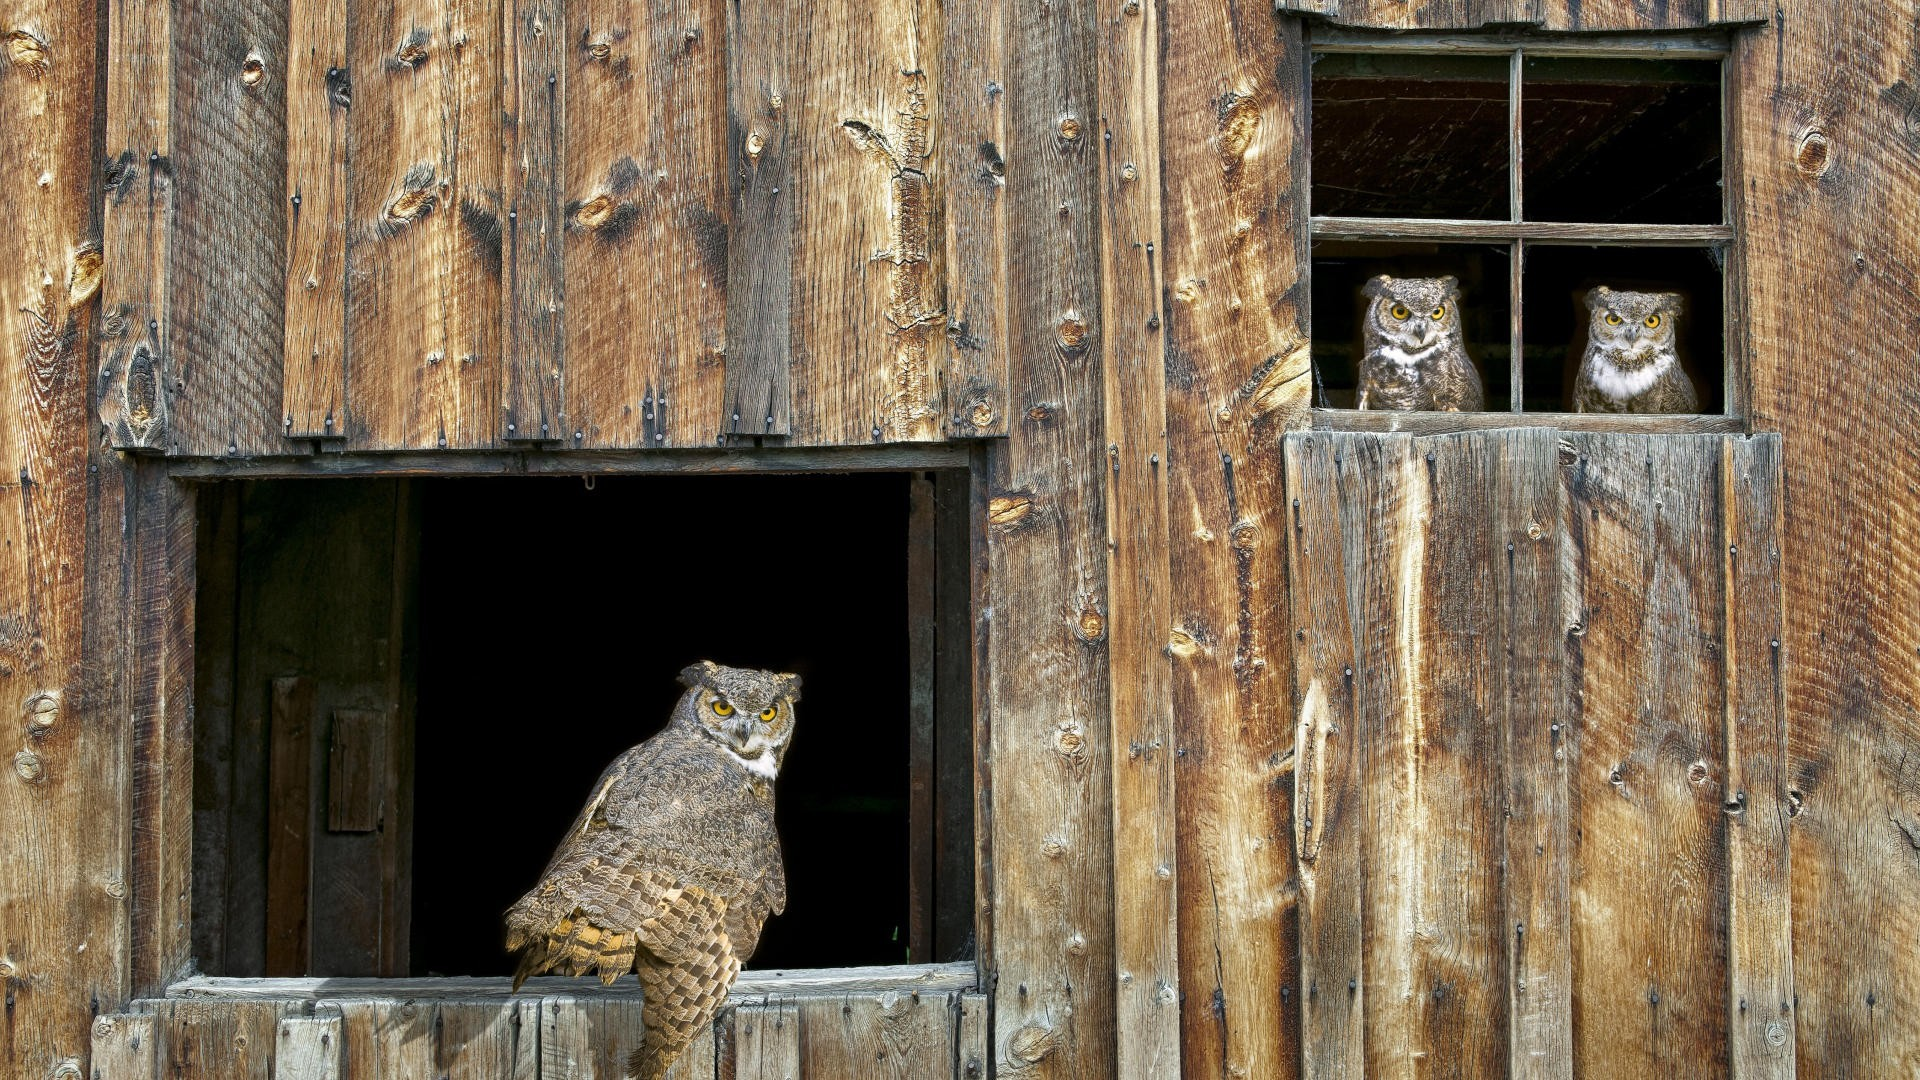 Birds window Owls barn HD Wallpaper